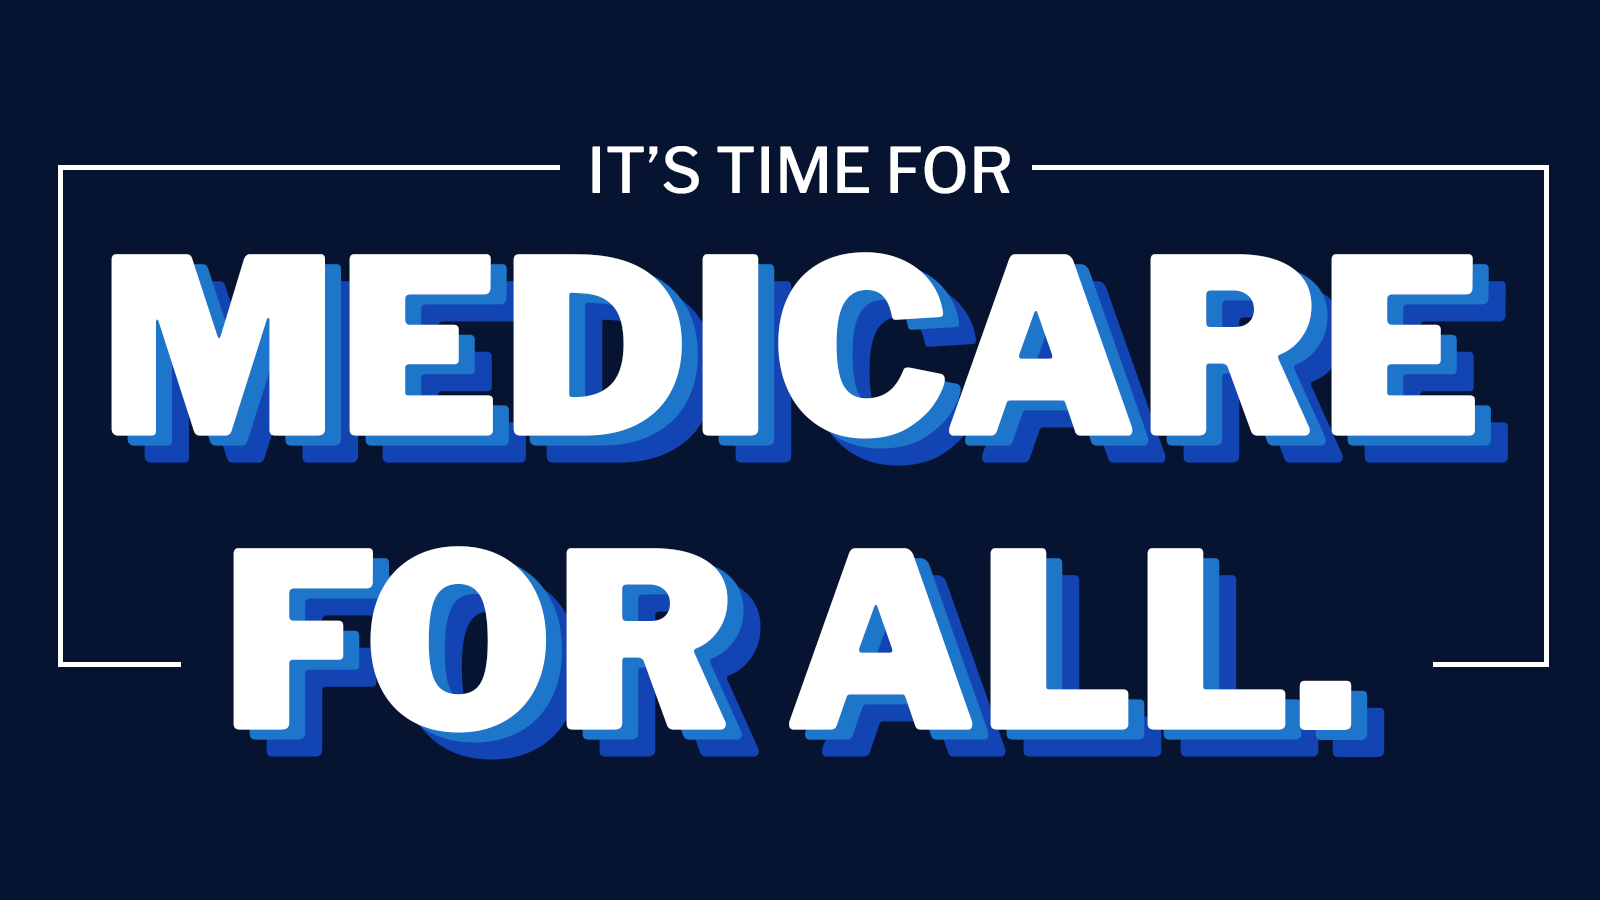 It's time for Medicare for All